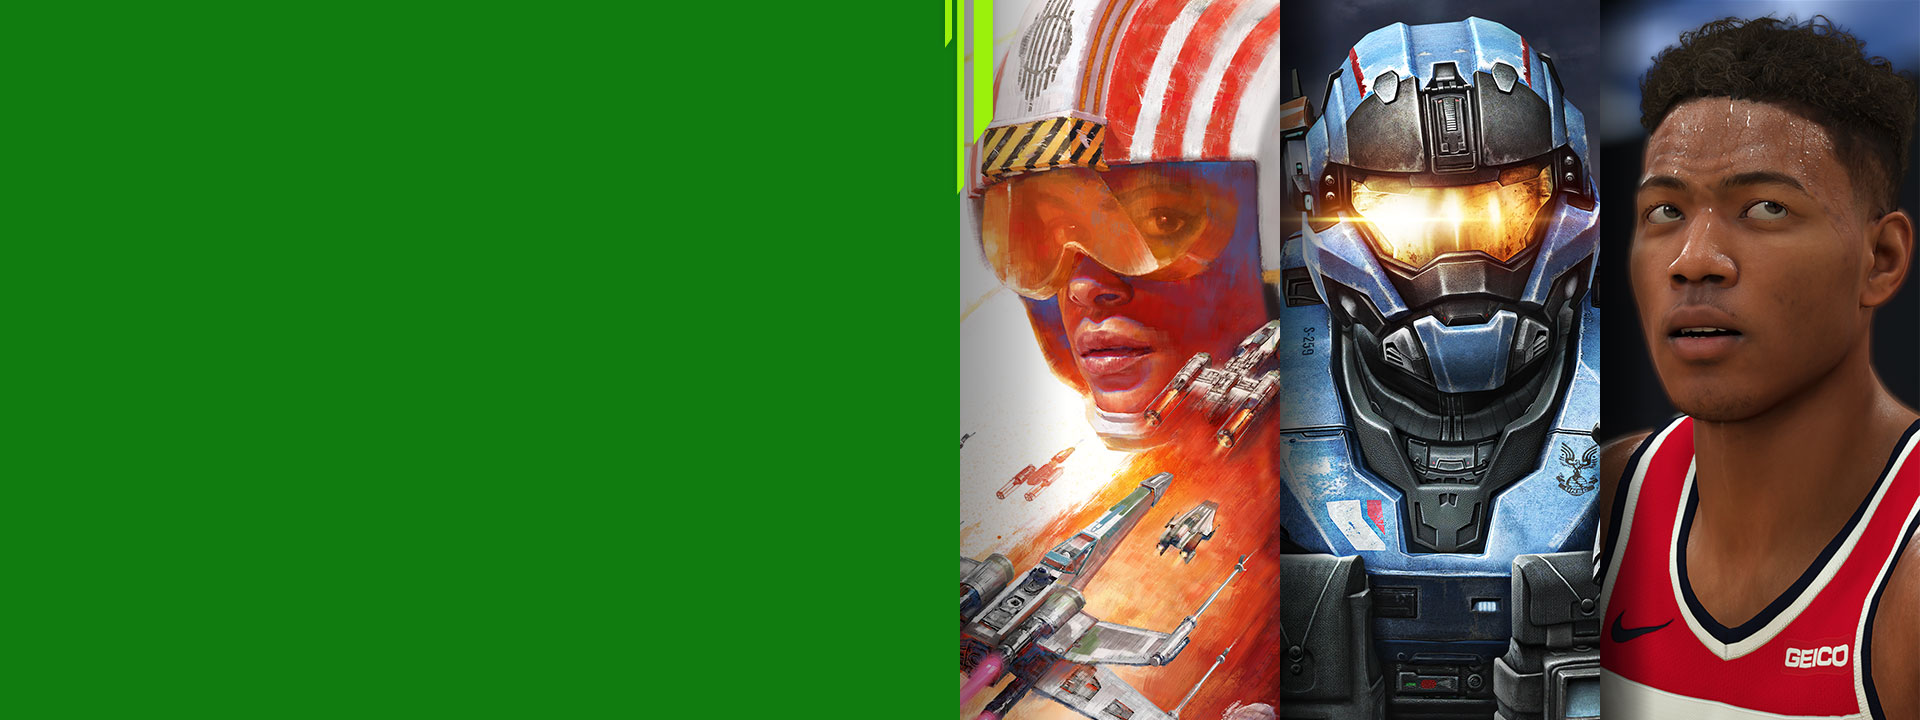 Game characters from Star Wars Squadrons, Halo MCC, and NBA 2K21.